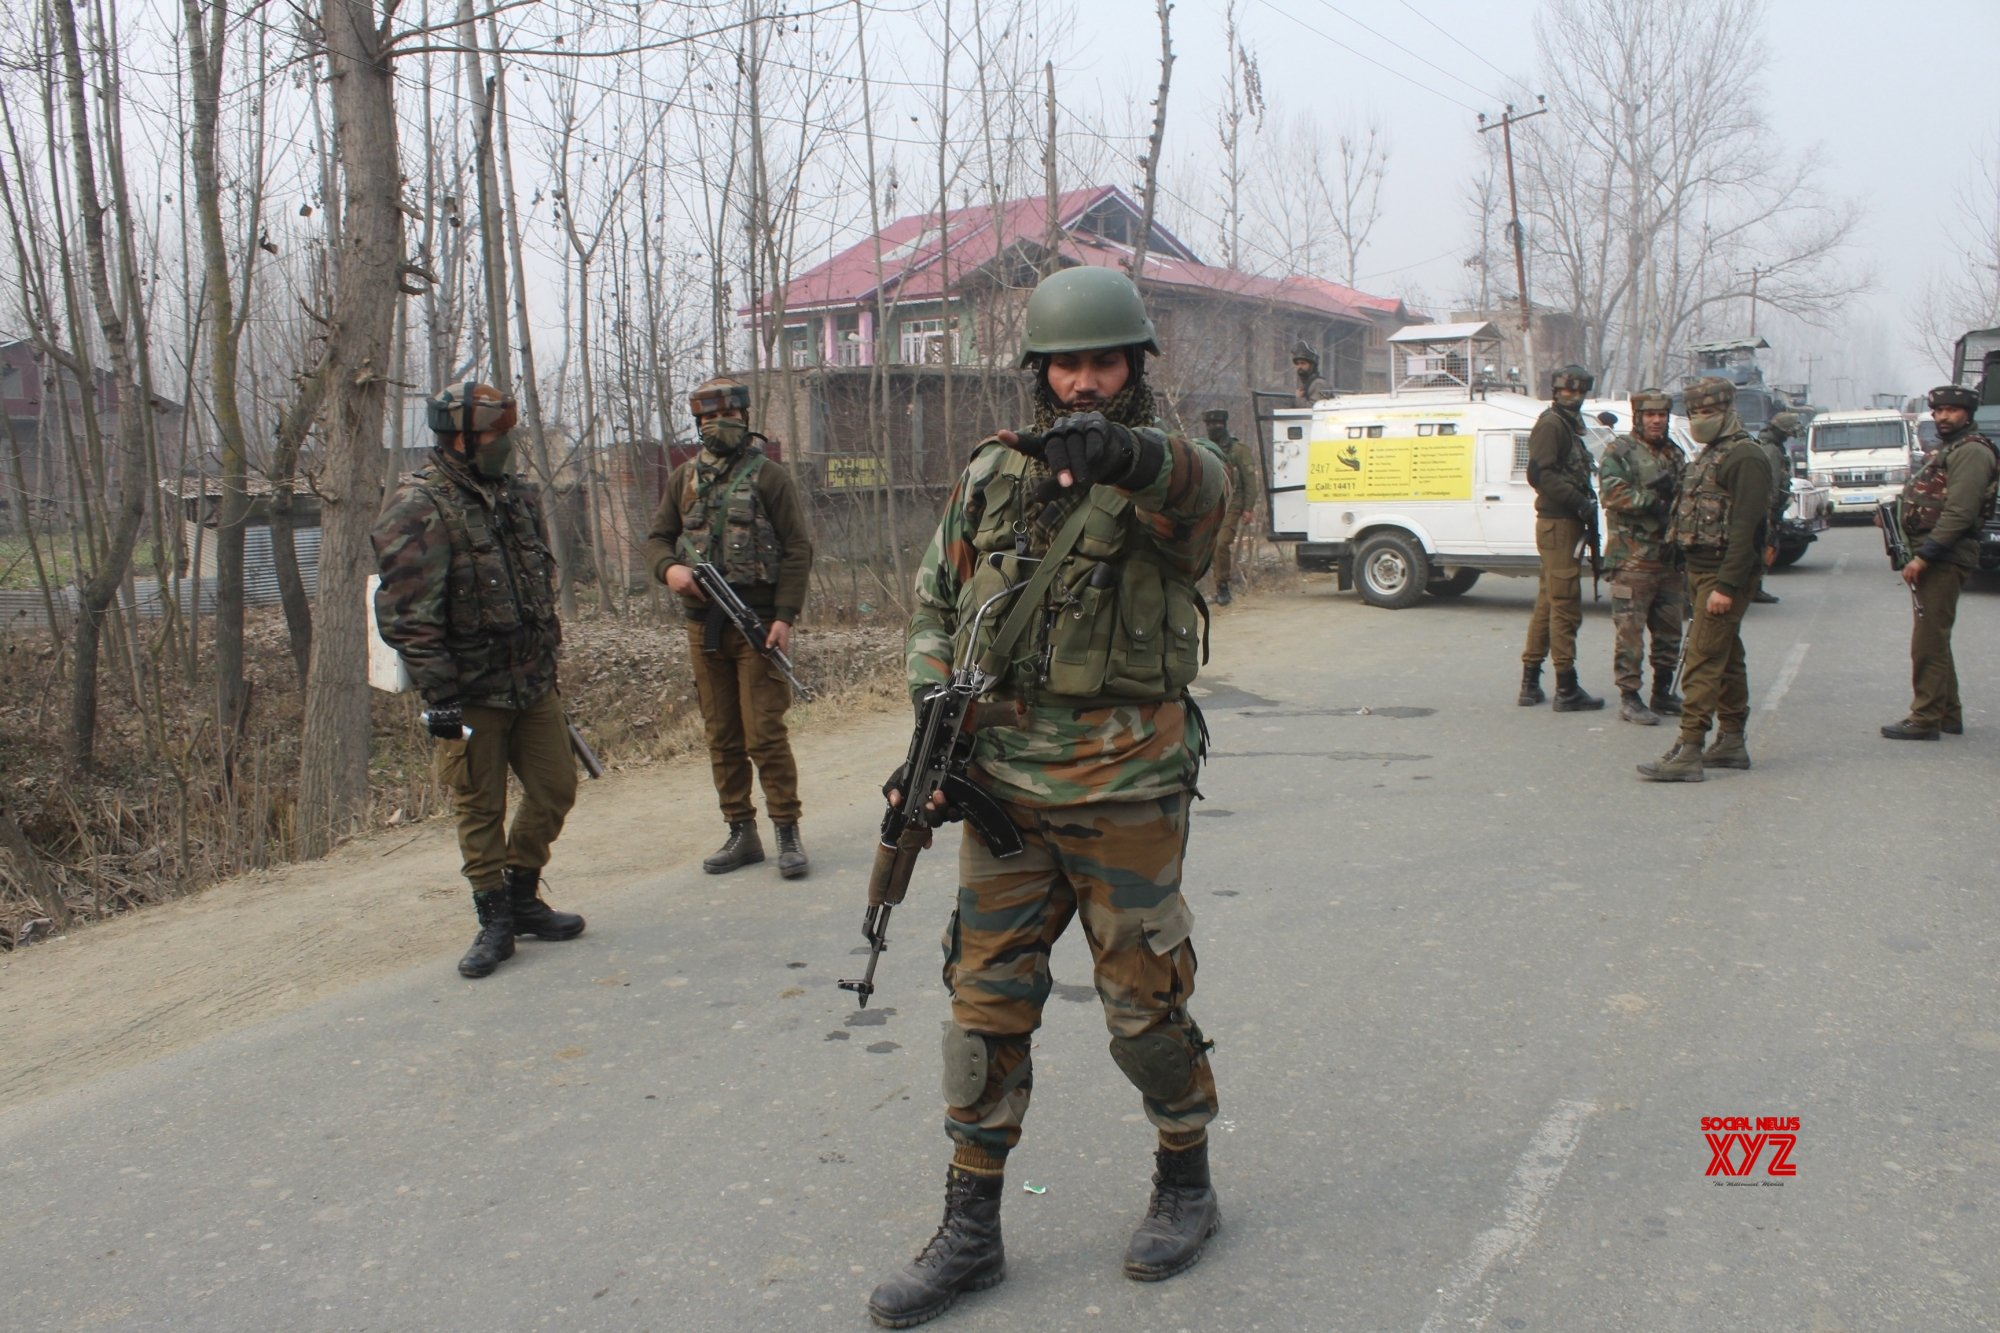 Jaish, Lashkar militants trained in Af to attack India ahead of Aug 5